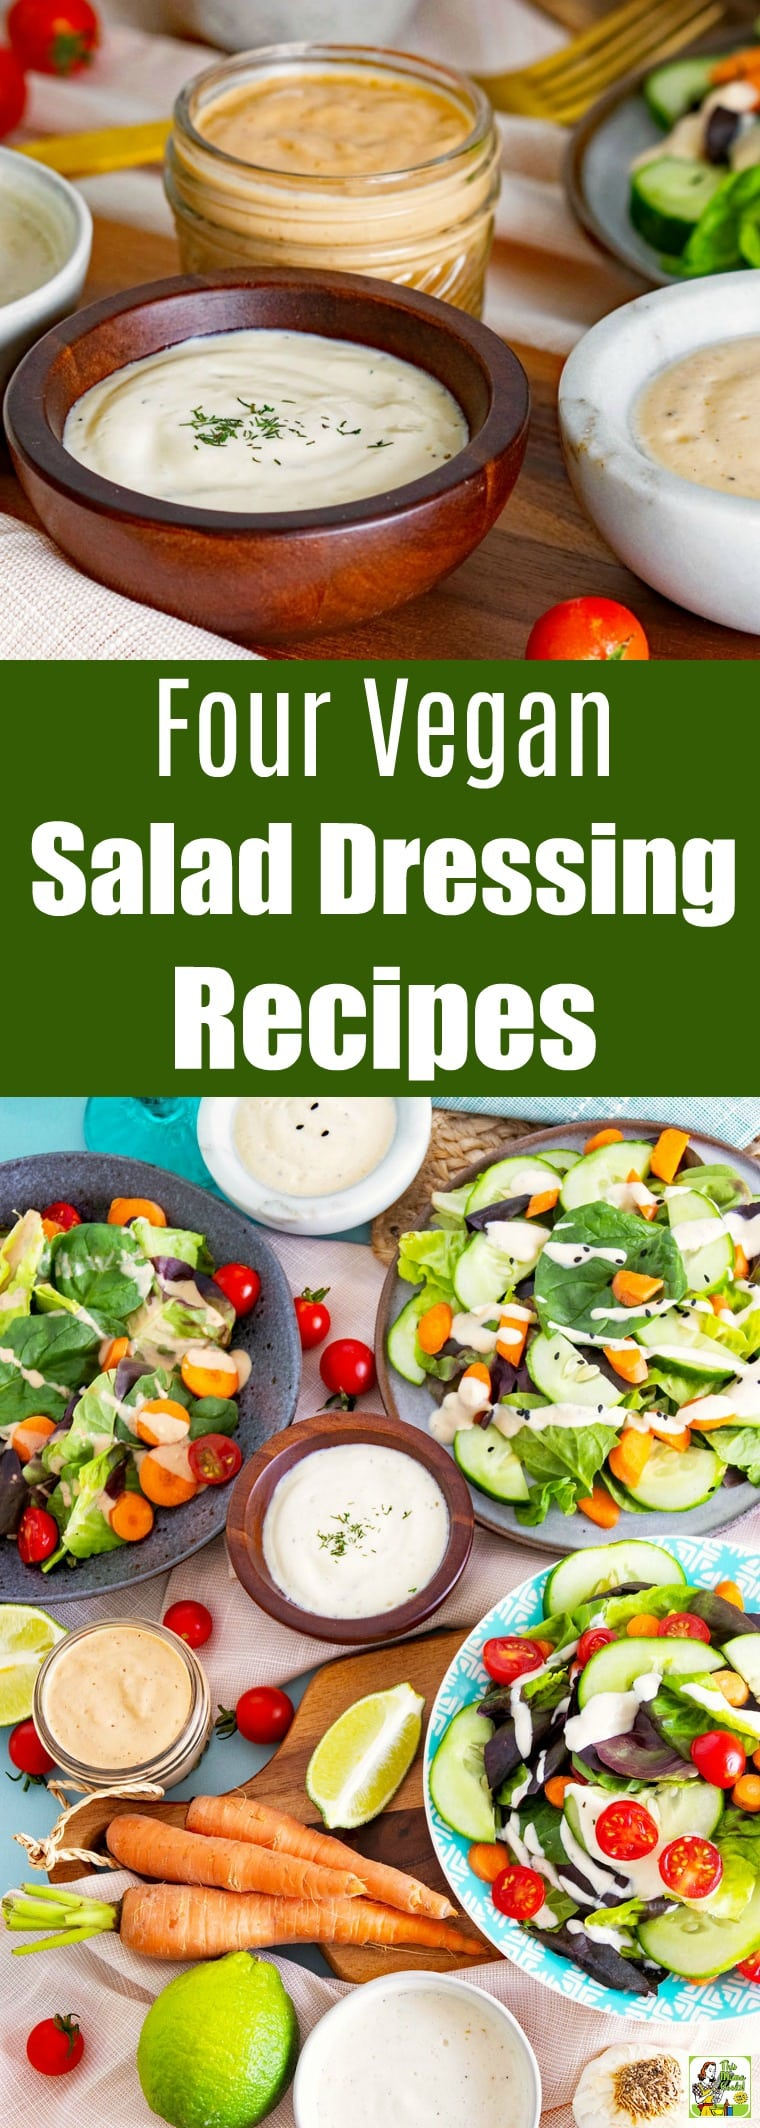 4 Vegan Salad Dressing Recipes